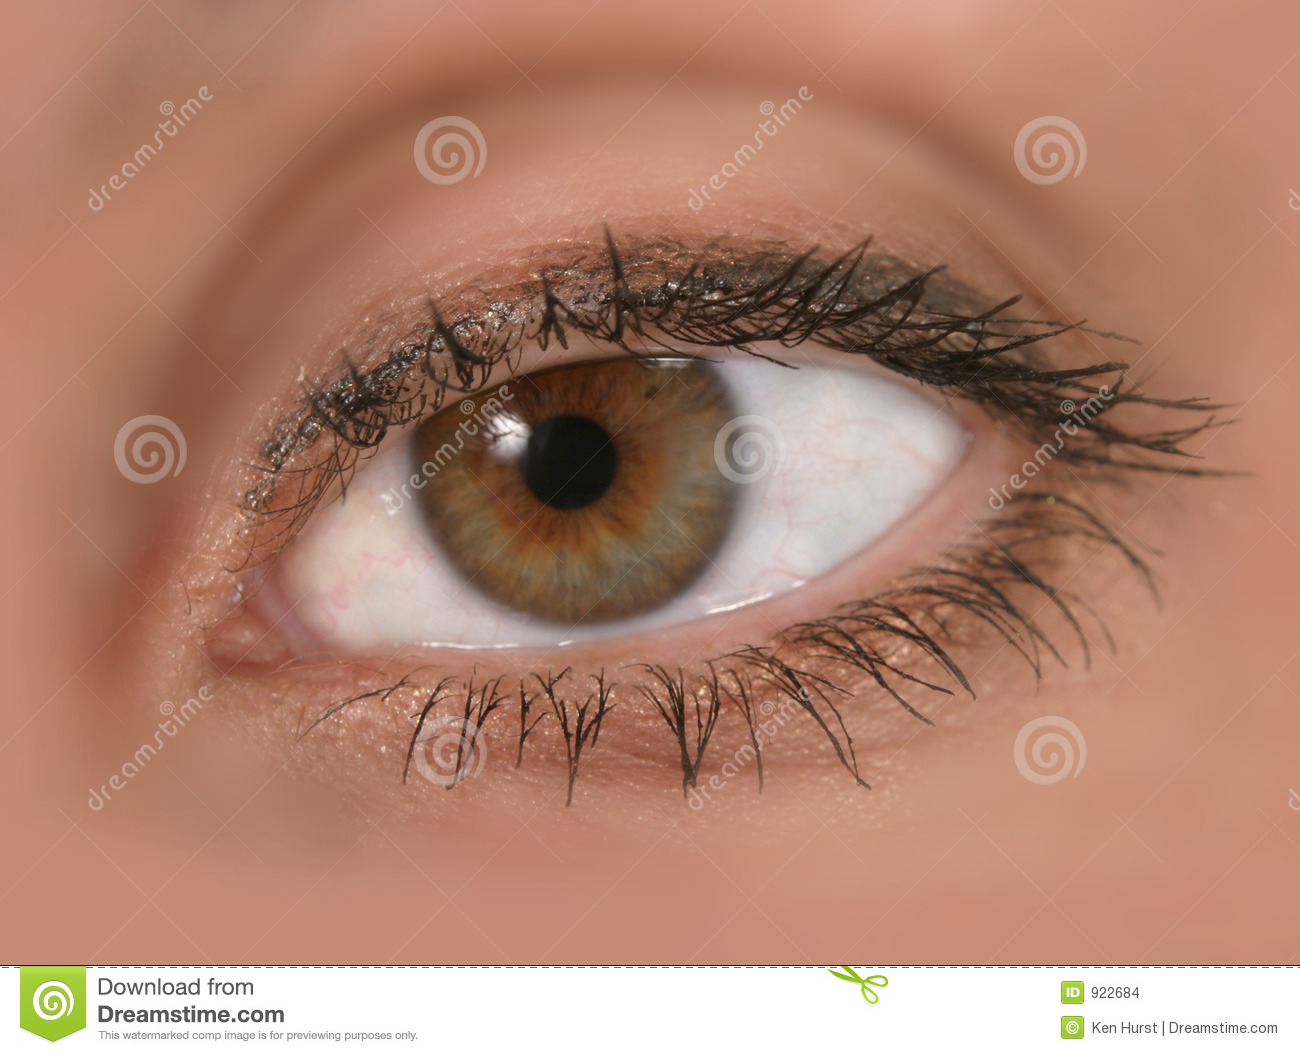 Close Up Of Woman's Eye In Focus Stock Images - Image: 922684